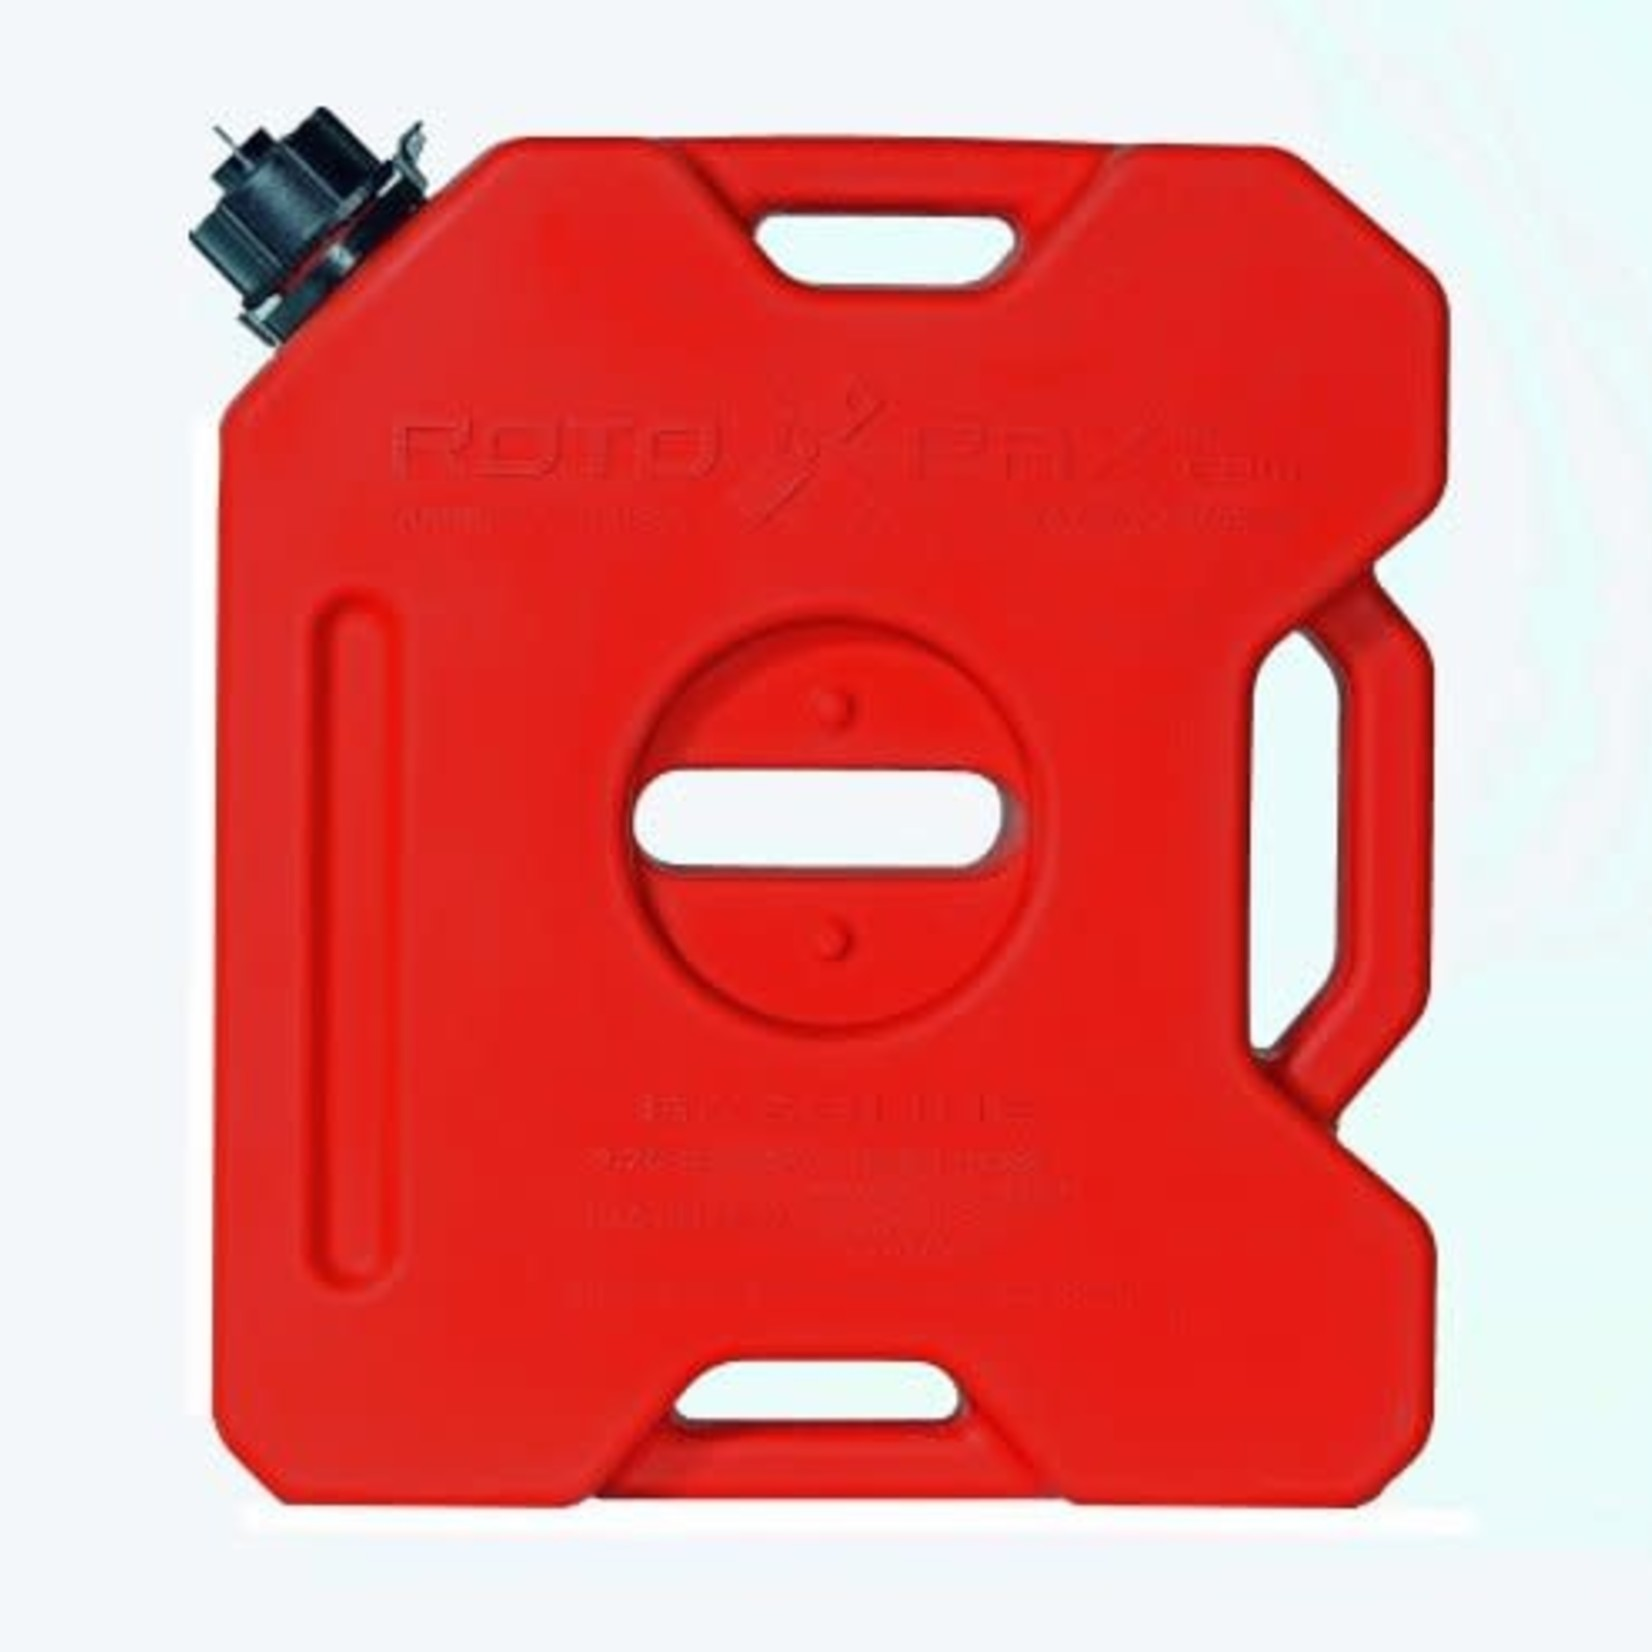 Kimpex Connect Fuel Pack - 1.75 Gallon